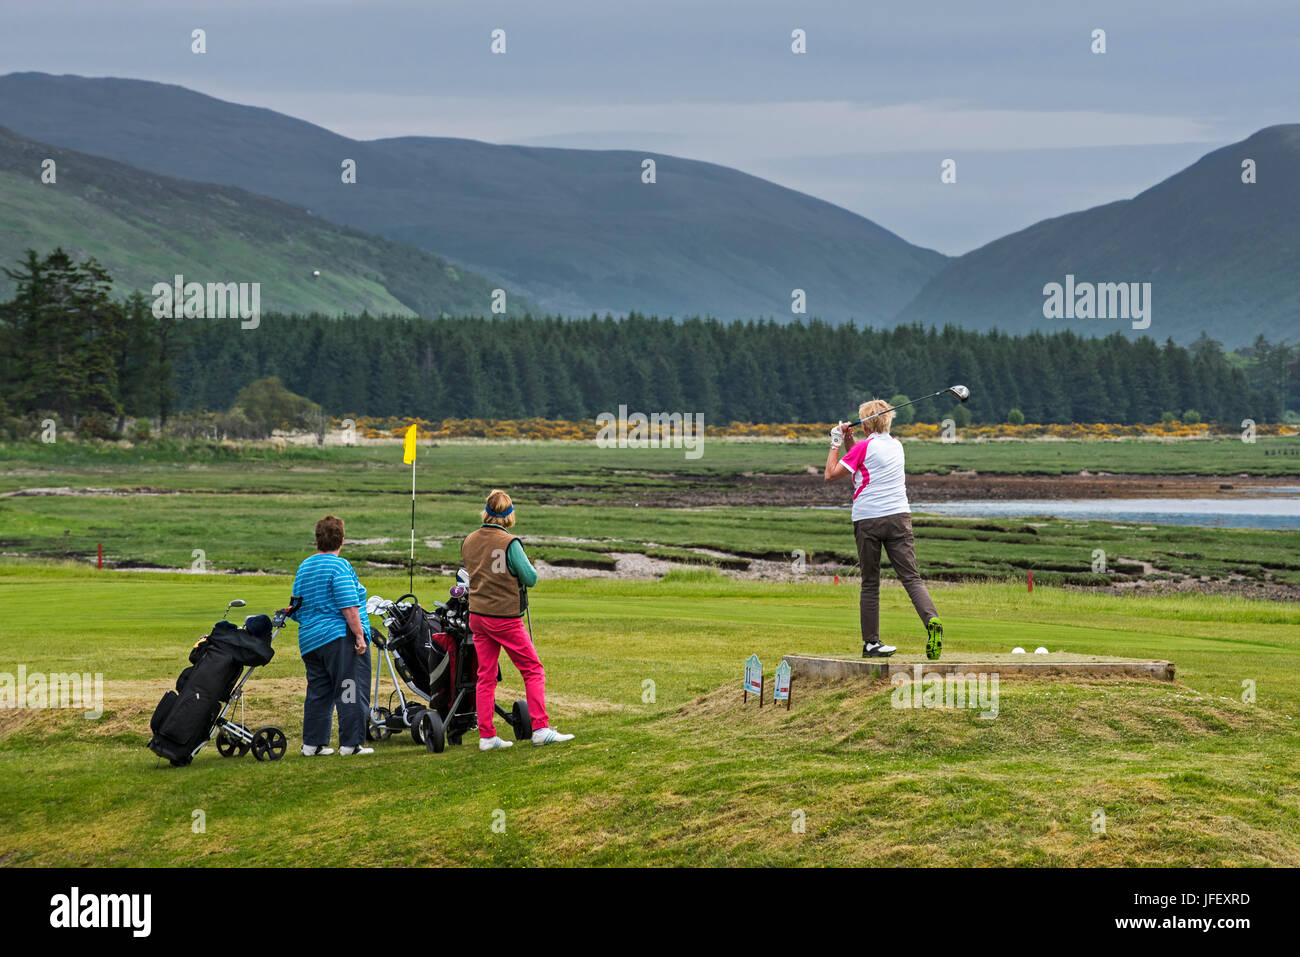 Three elderly women on Scottish golf course playing golf in Lochcarron, Wester Ross, Scotland, UK - Stock Image